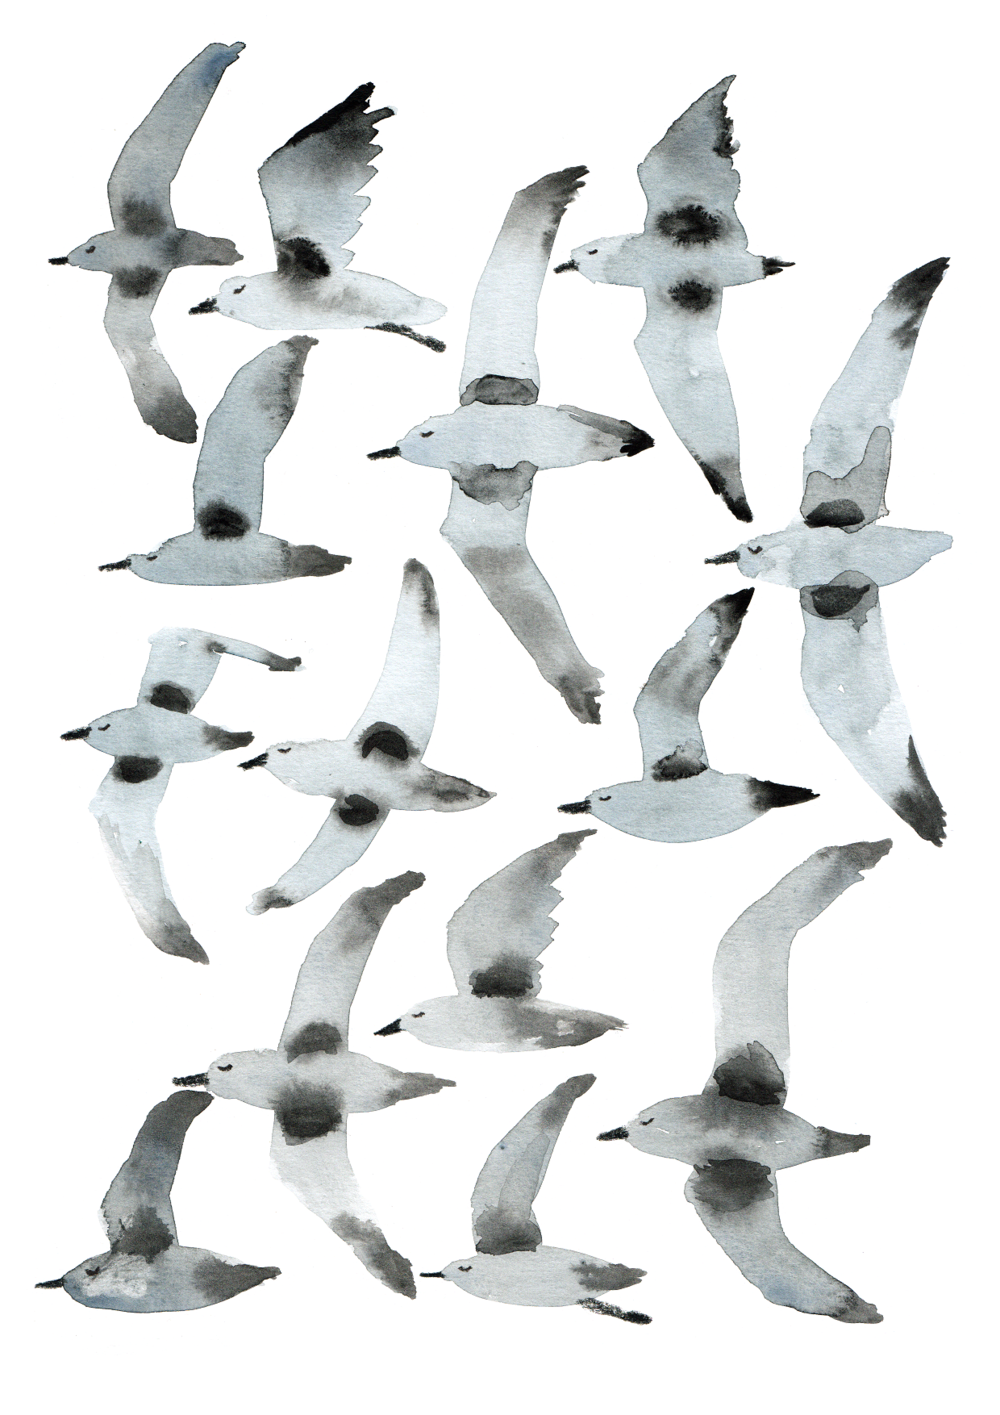 Marc's work often demonstrates a particular focus on bids, as shown by this piece titled 'Plovers'.  Image: Marc Martin